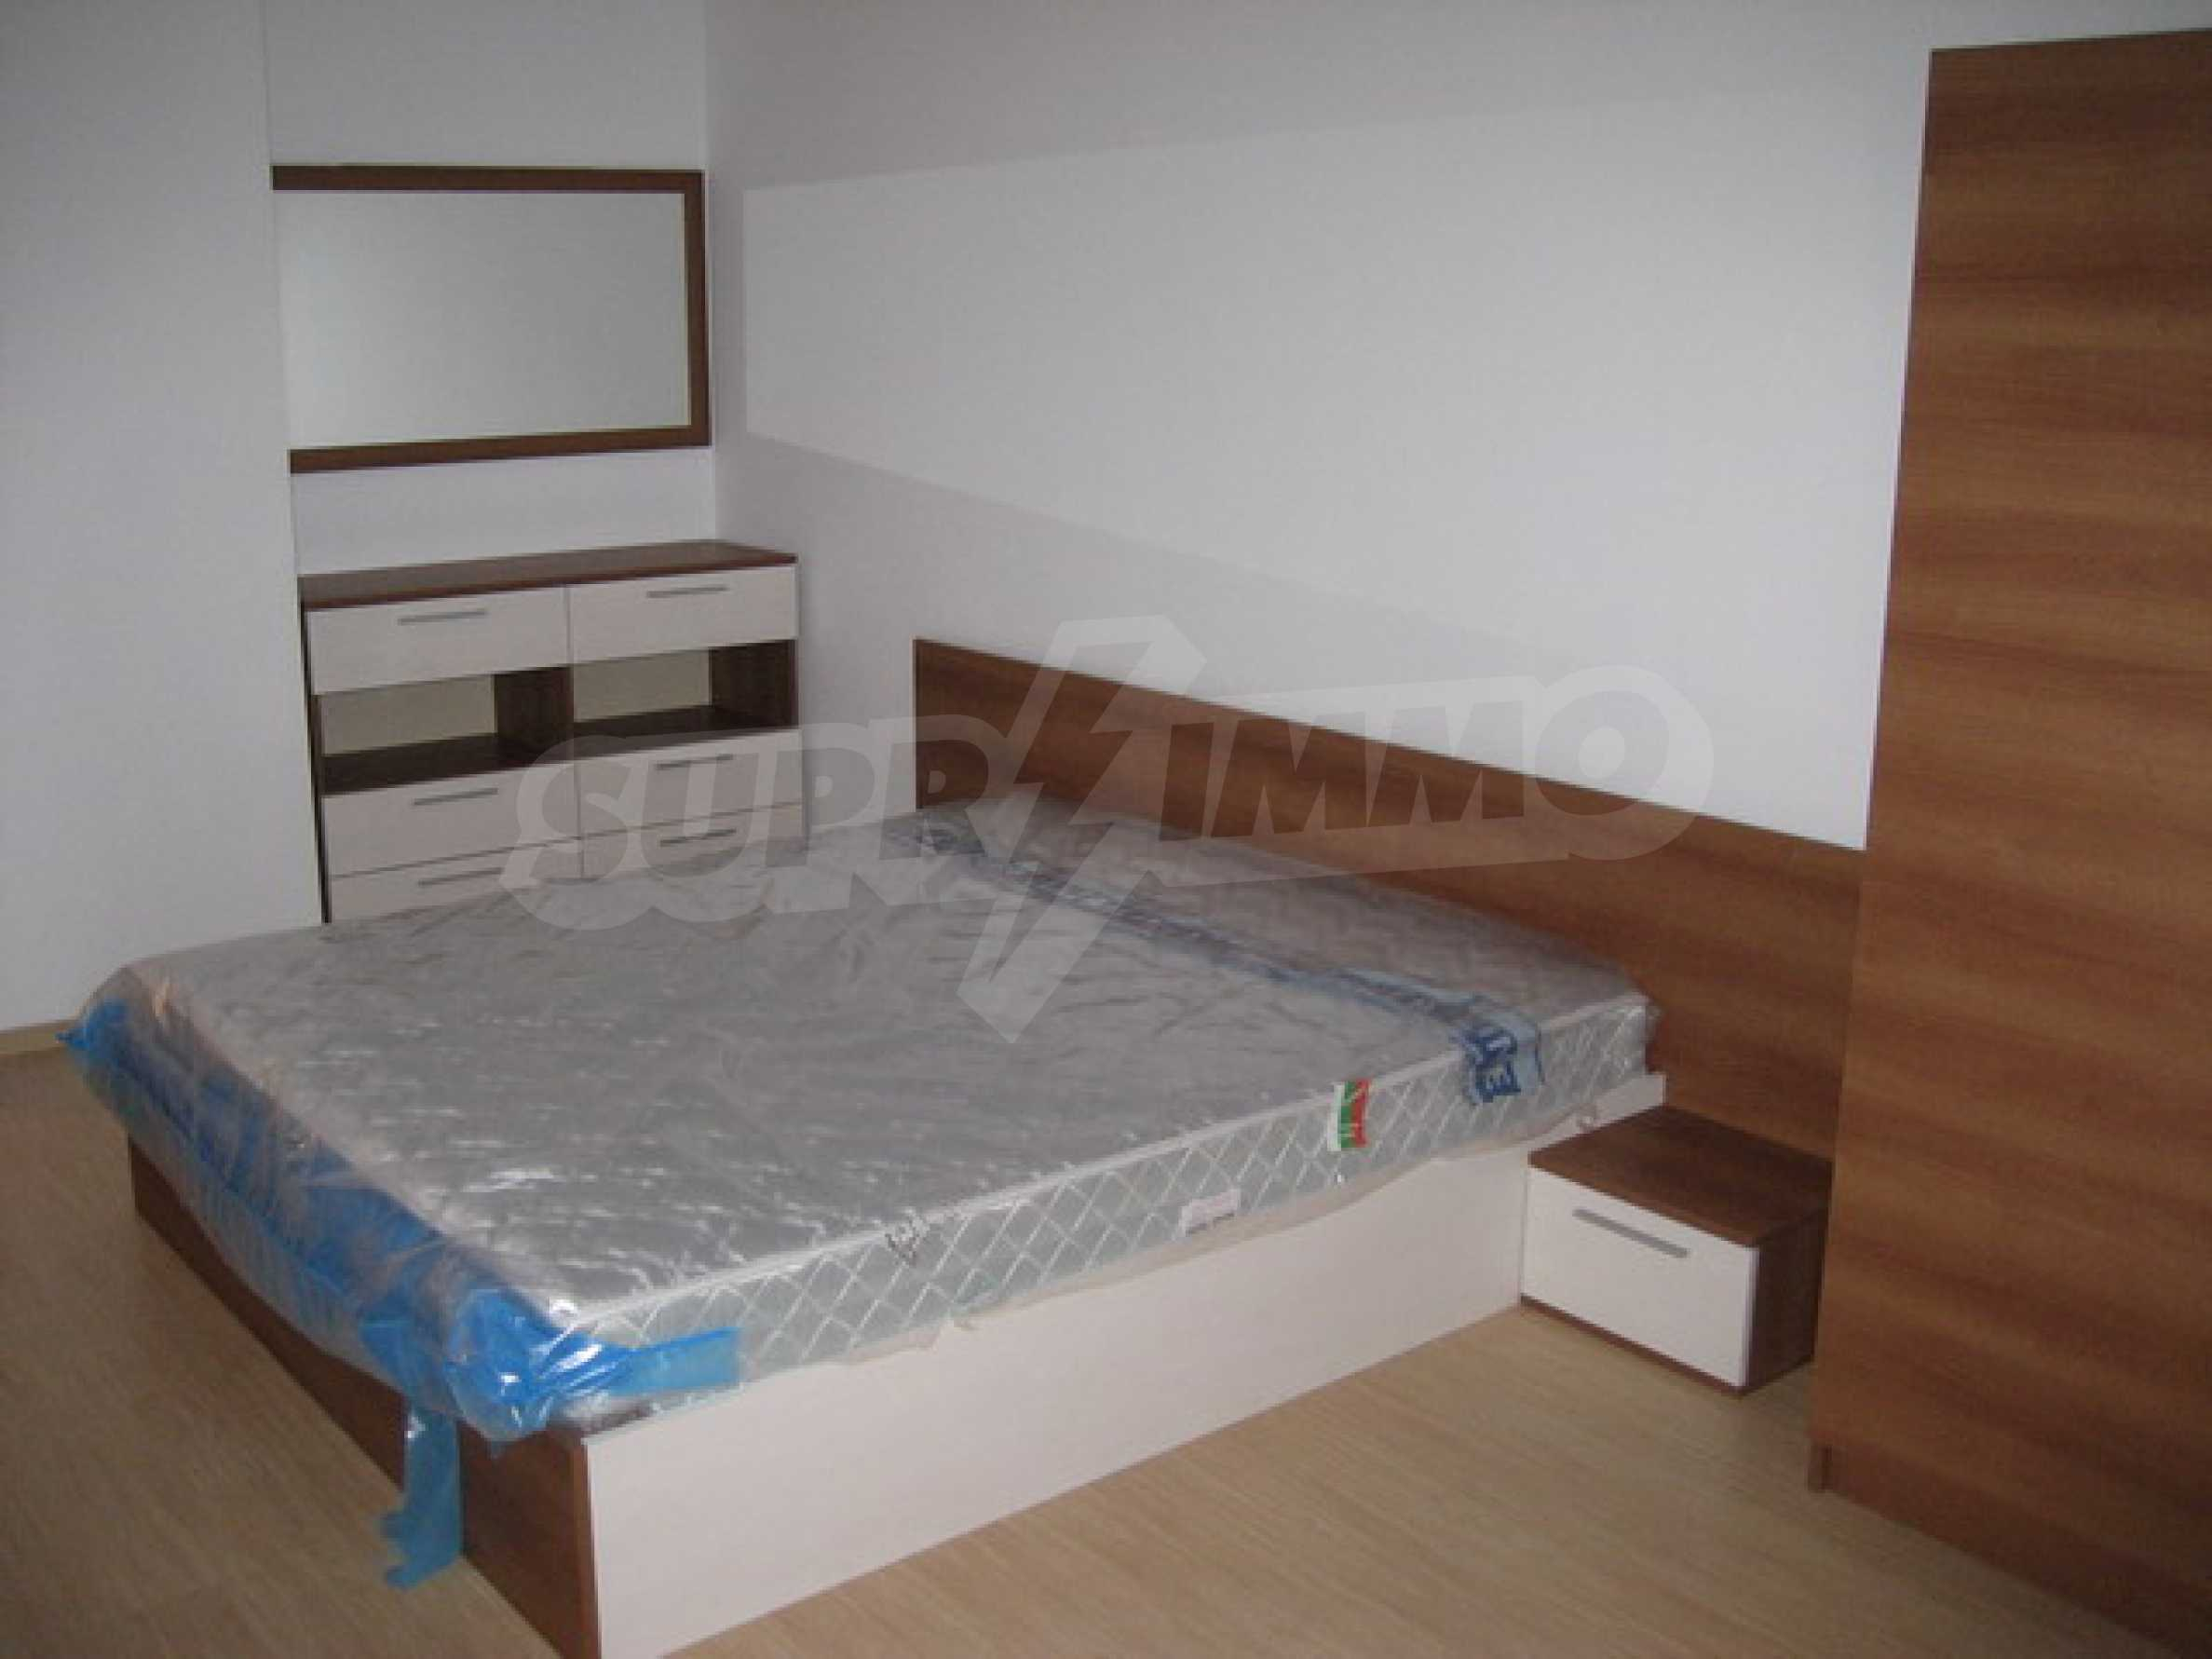 One bedroom apartment with good location for rent in Veliko Tarnovo 10